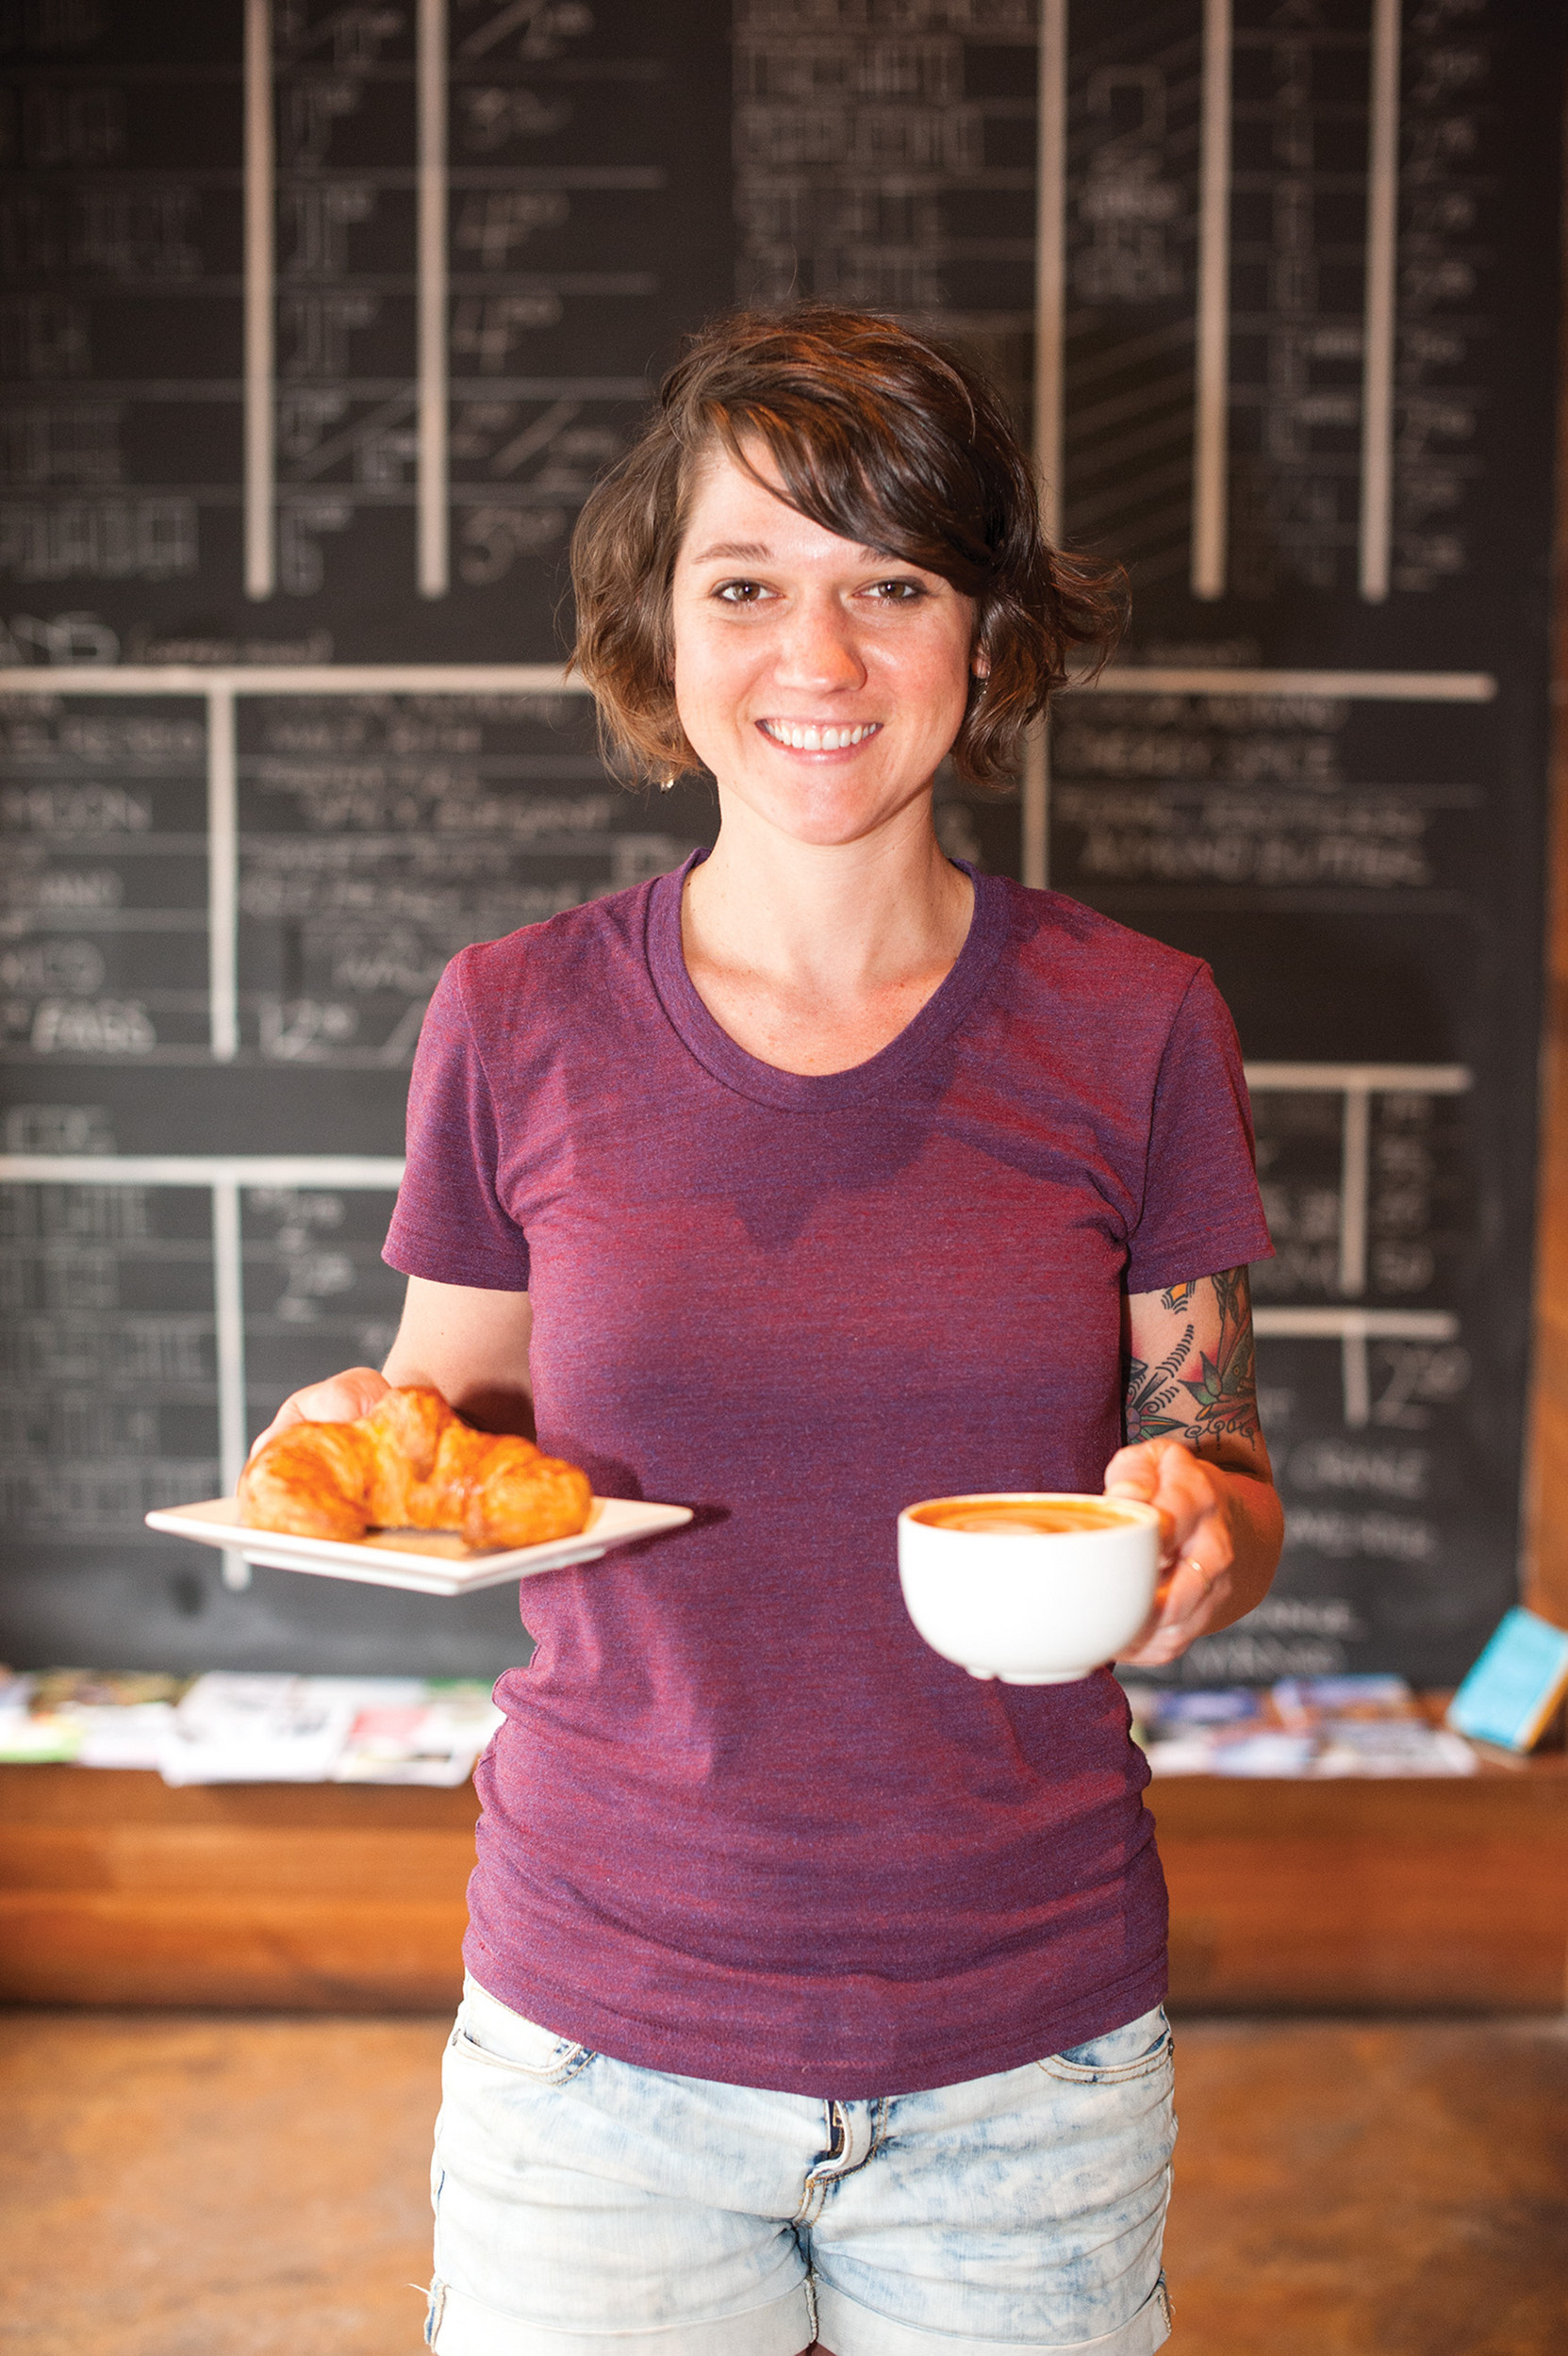 Barista Claire Sommers Buck at Riverside's Bold Bean Coffee shows off a croissant and latte.